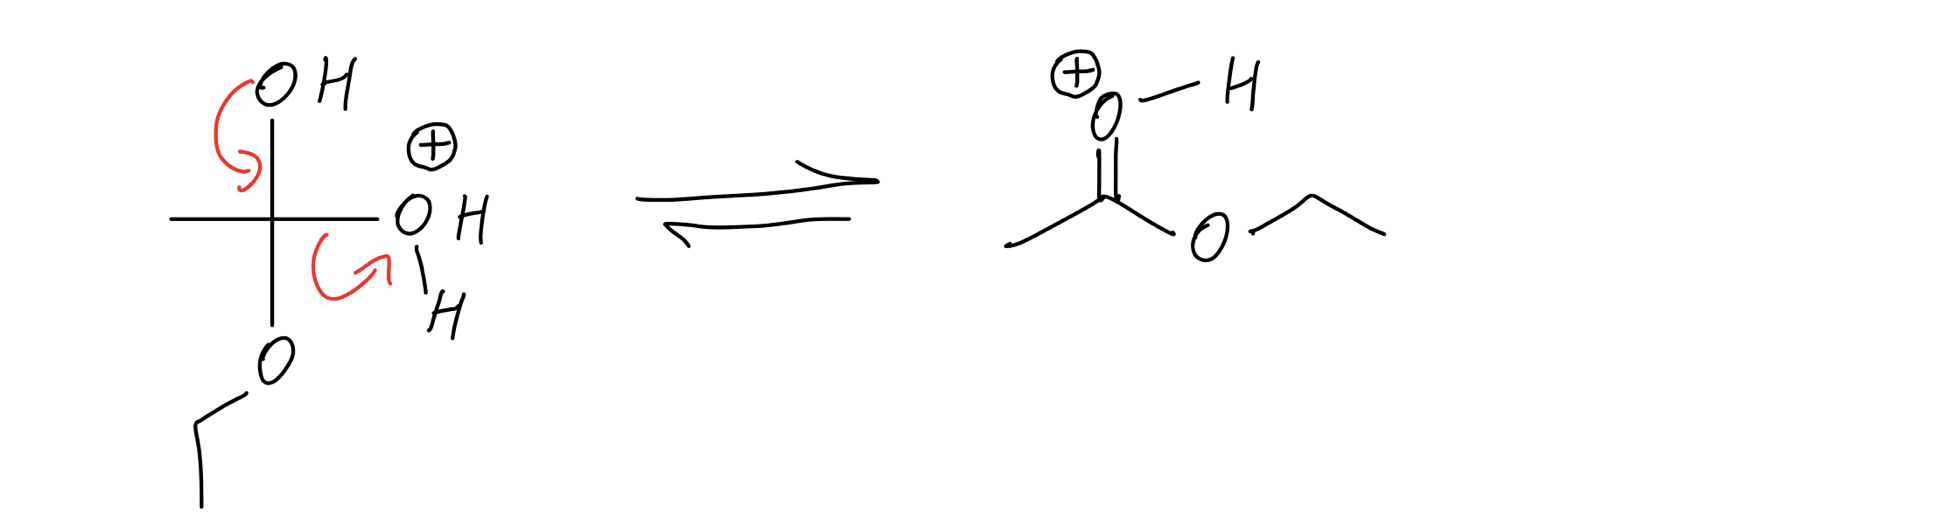 reform-the-carbonyl